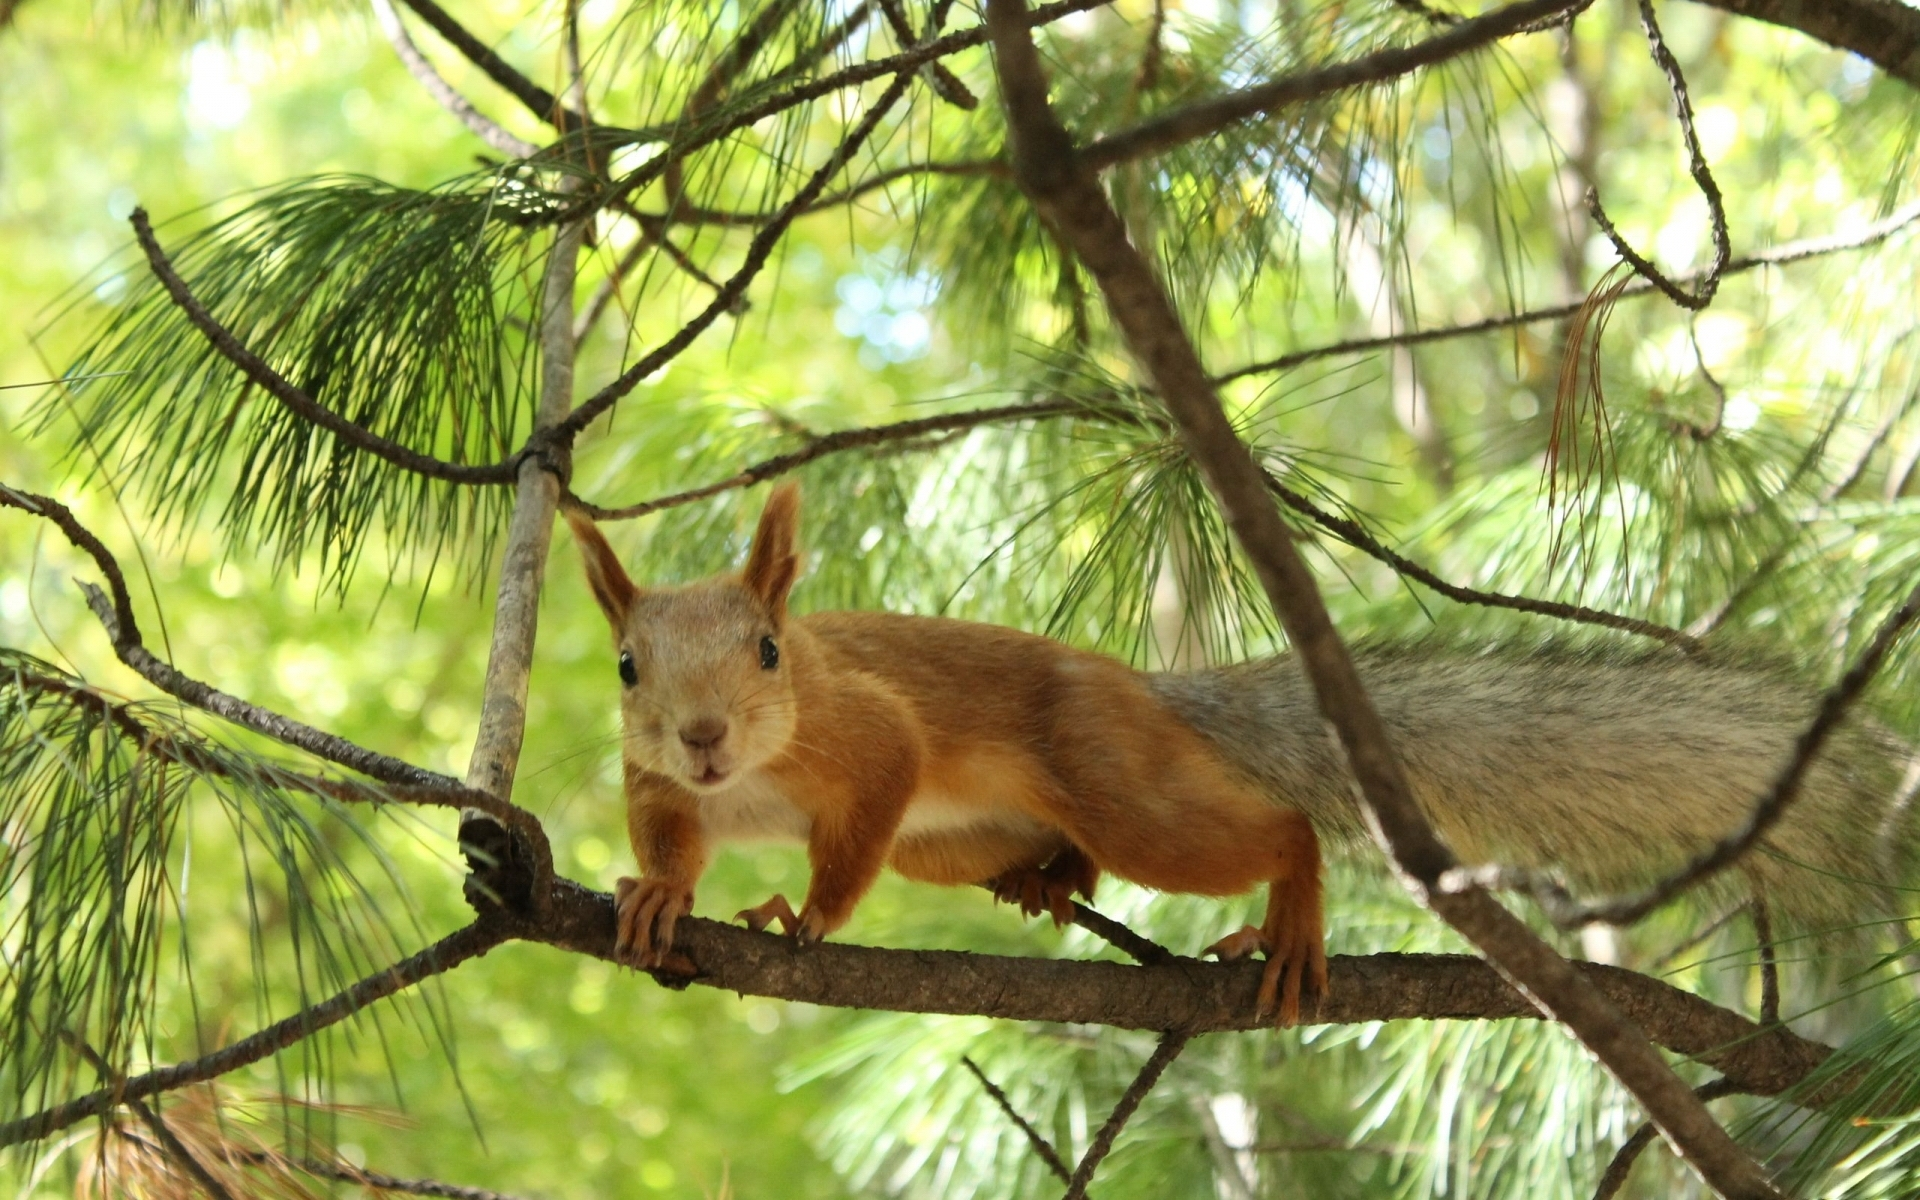 44950 download wallpaper Animals, Squirrel screensavers and pictures for free